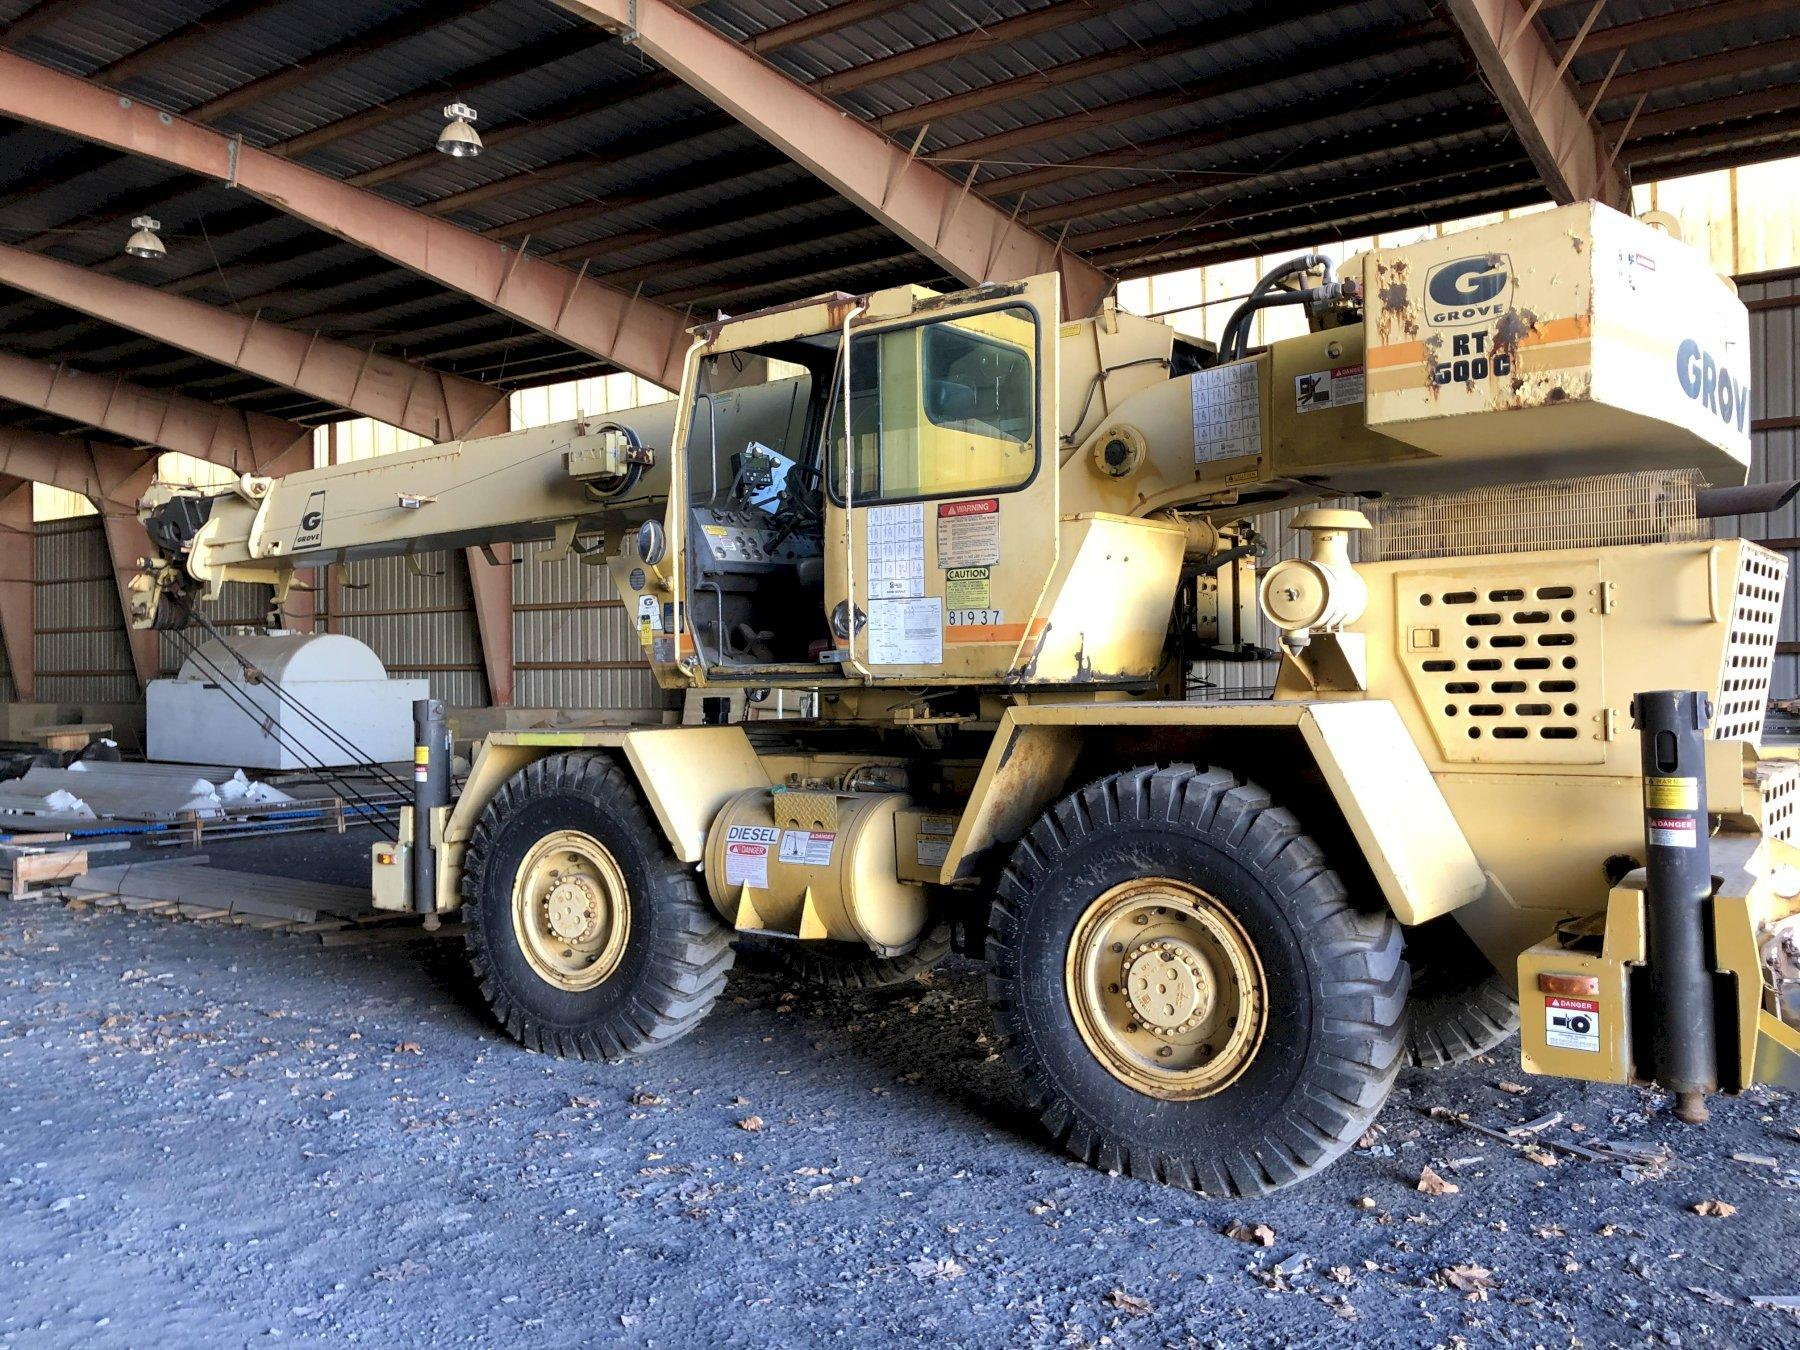 grove model rt528l mobile hydraulic crane s/n 70288 with new tires, 16 hours on meter